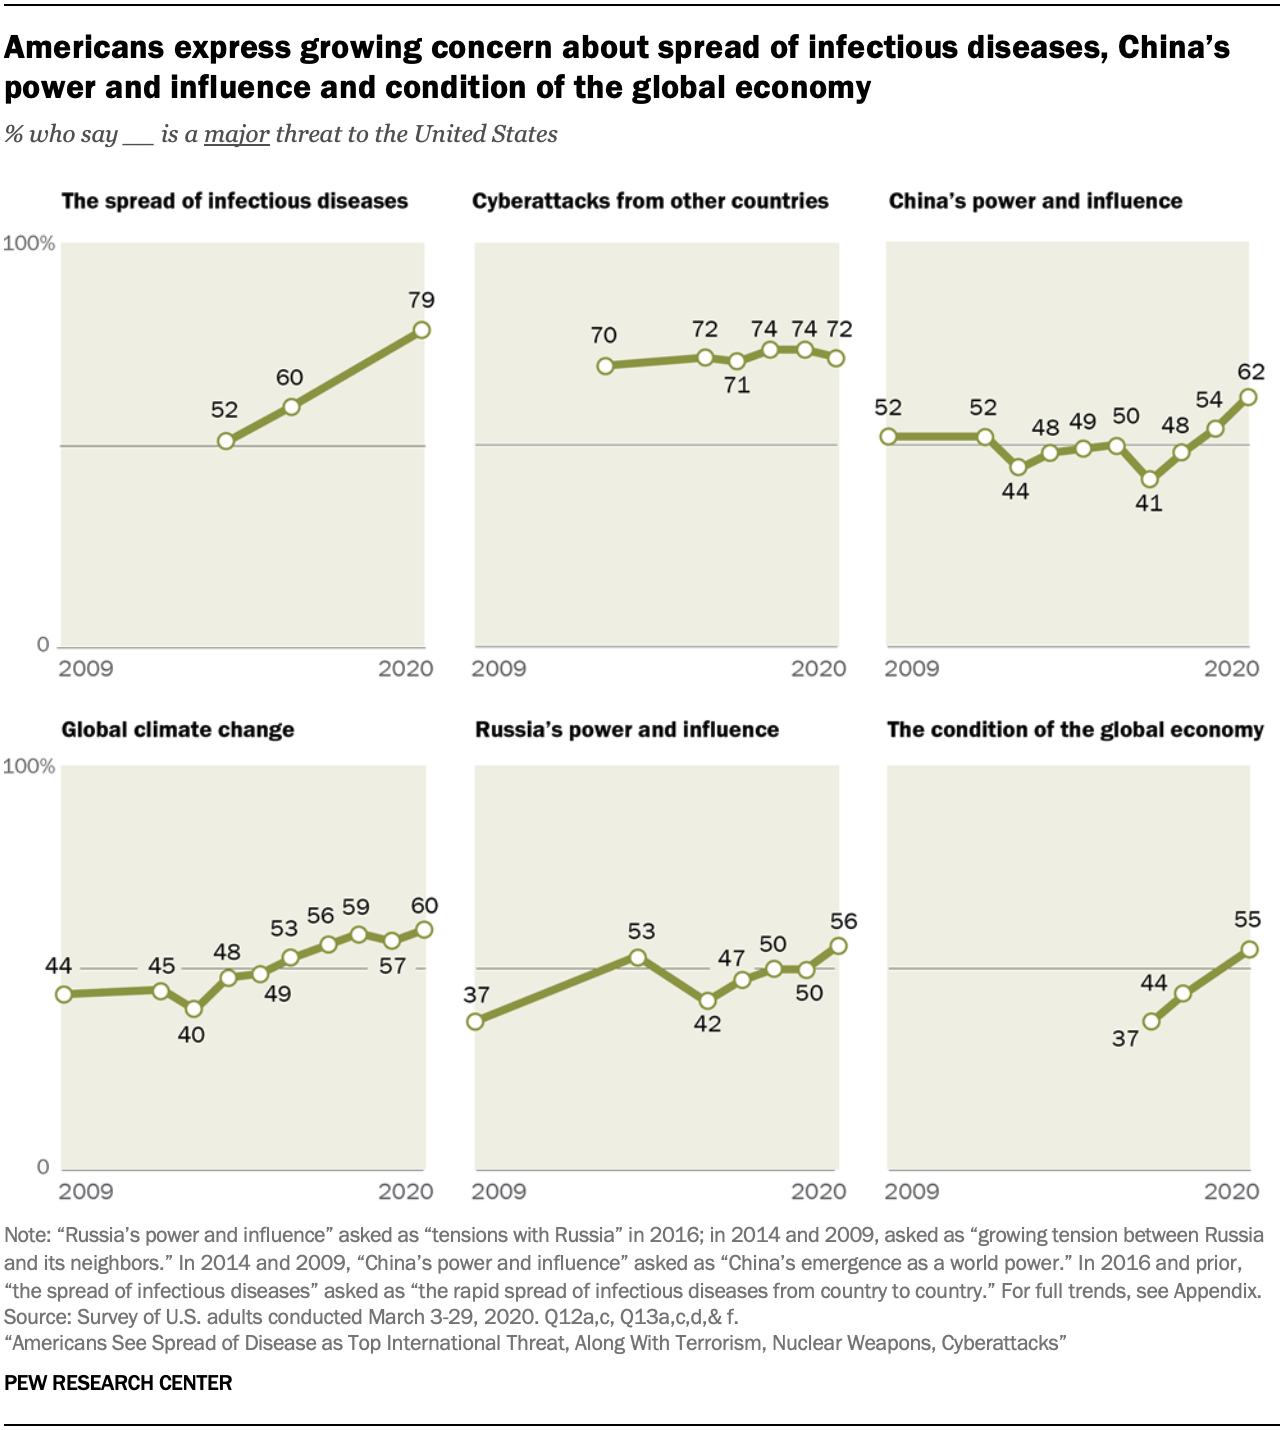 A chart showing Americans express growing concern about spread of infectious diseases, China's power and influence and condition of the global economy